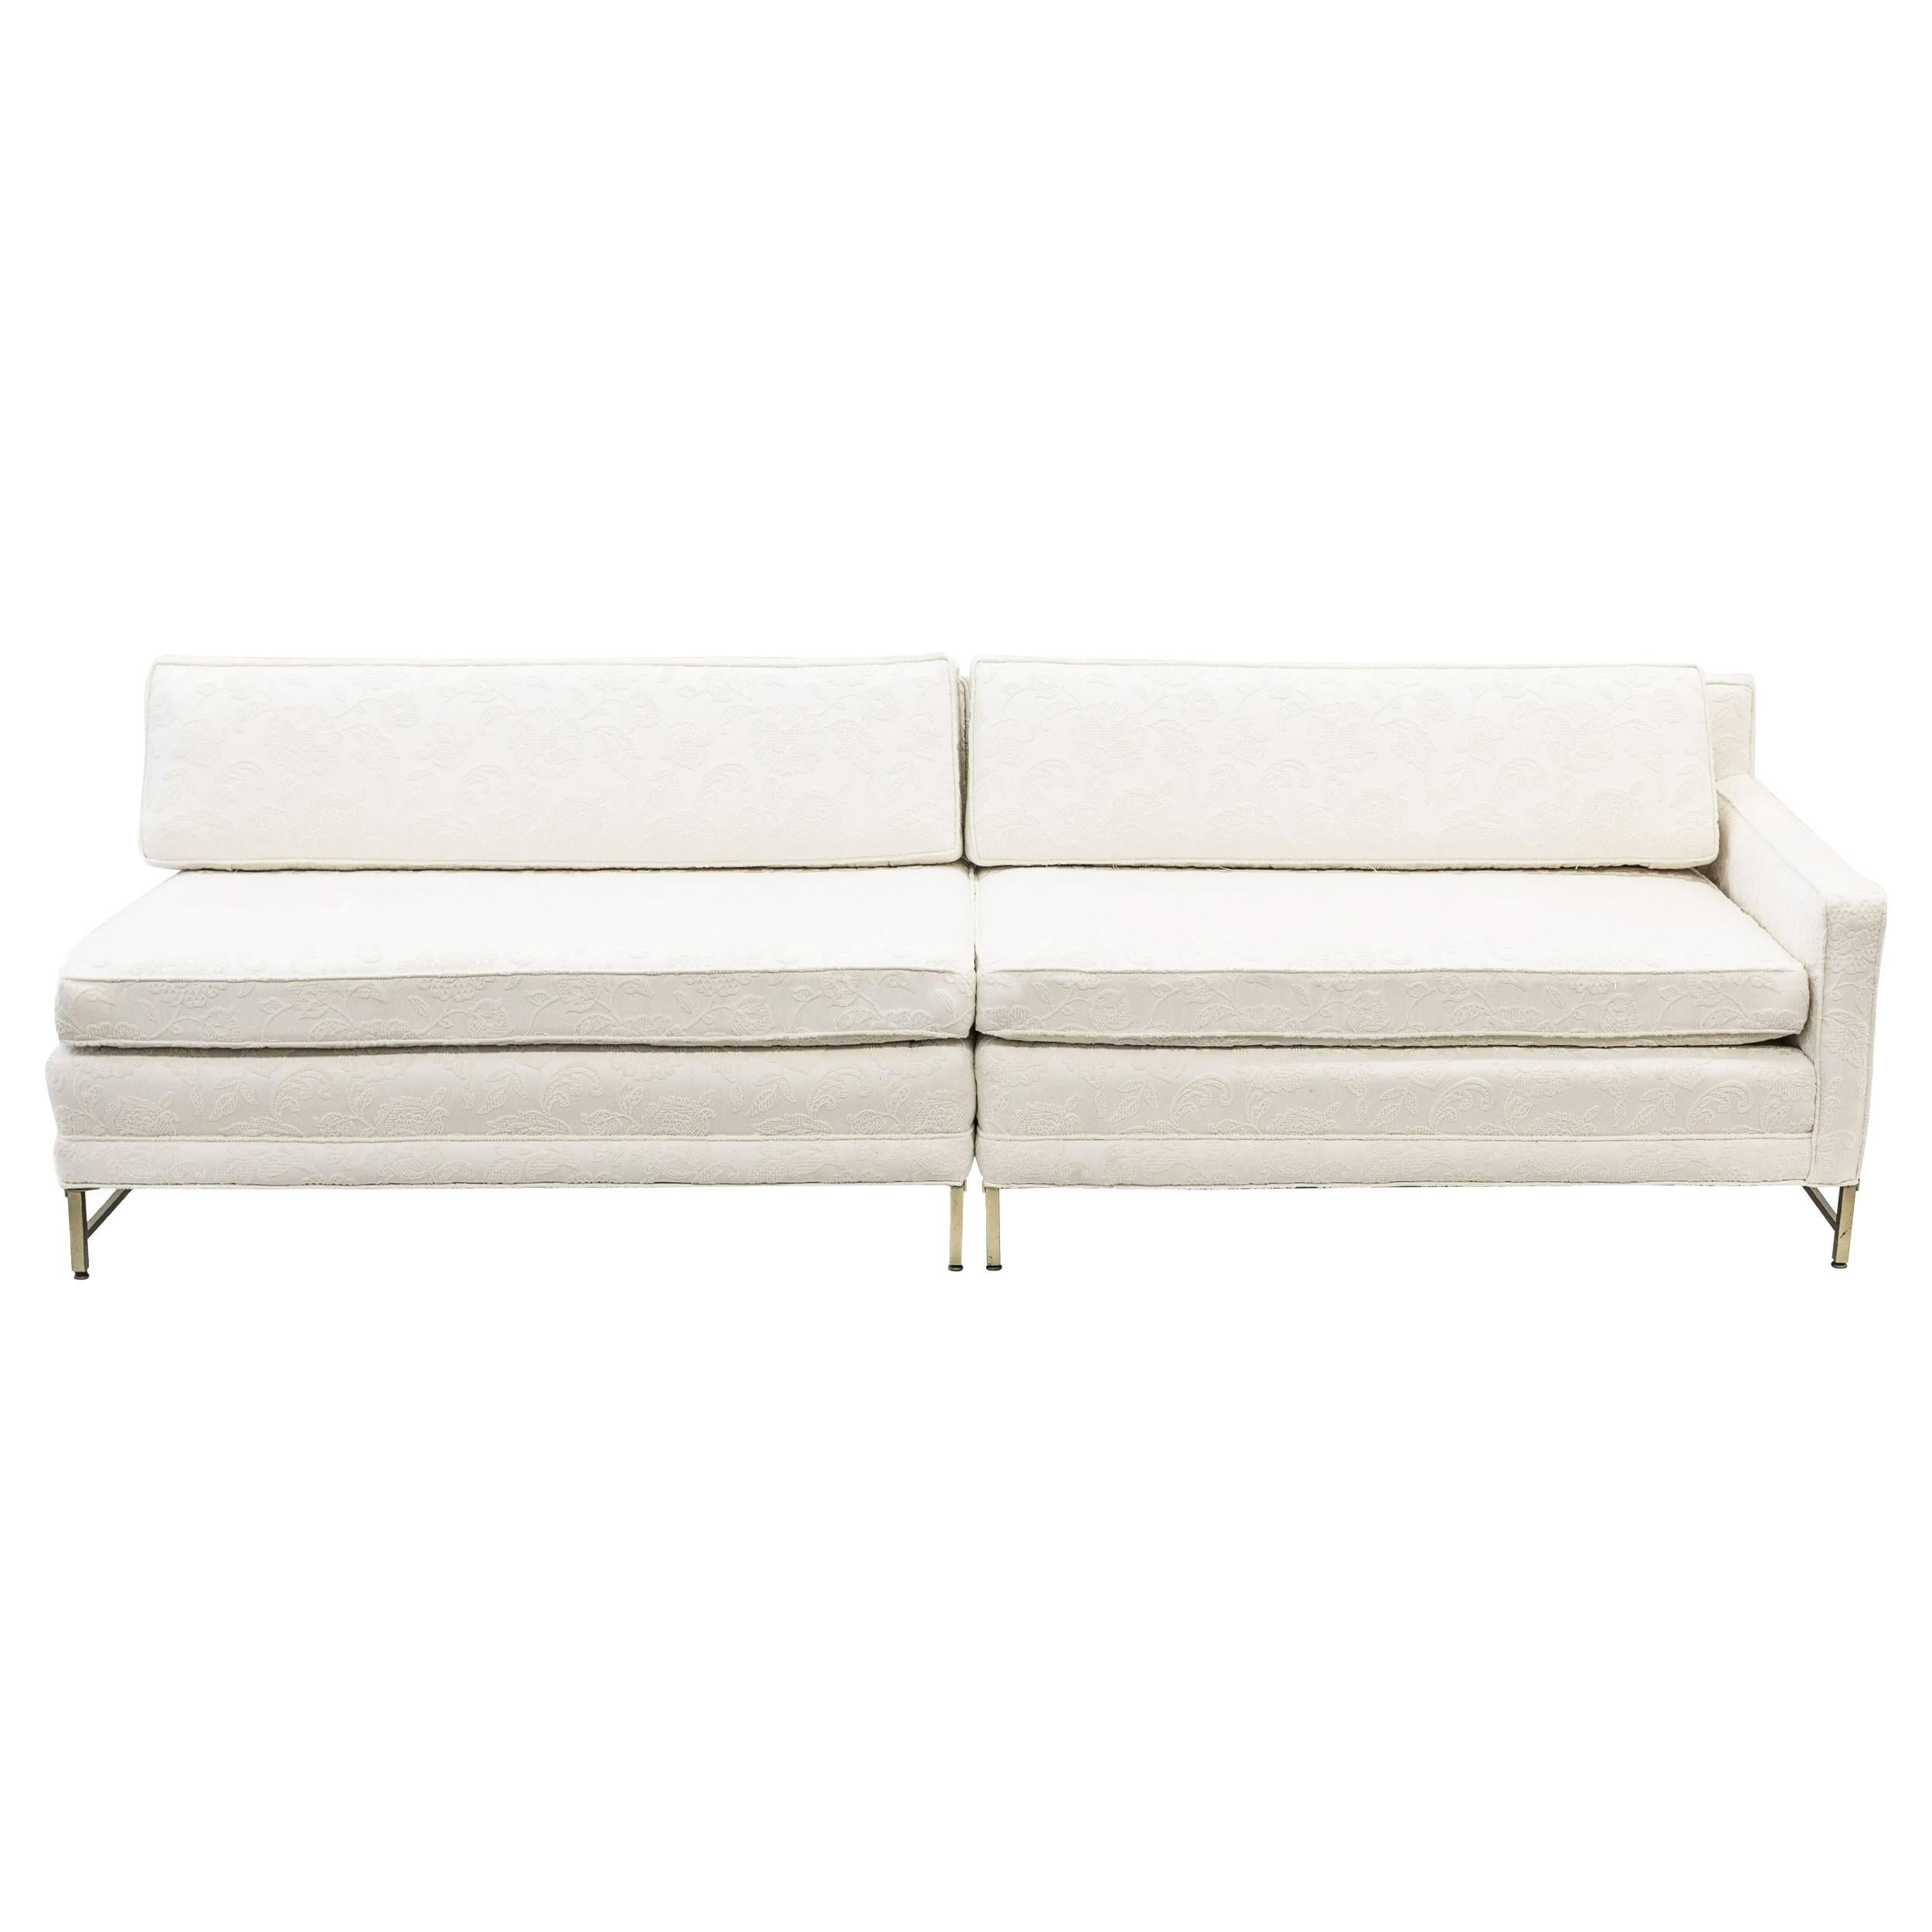 Paul McCobb for Directional Two-Piece Cream White Sectional Sofa, 1958, Brass